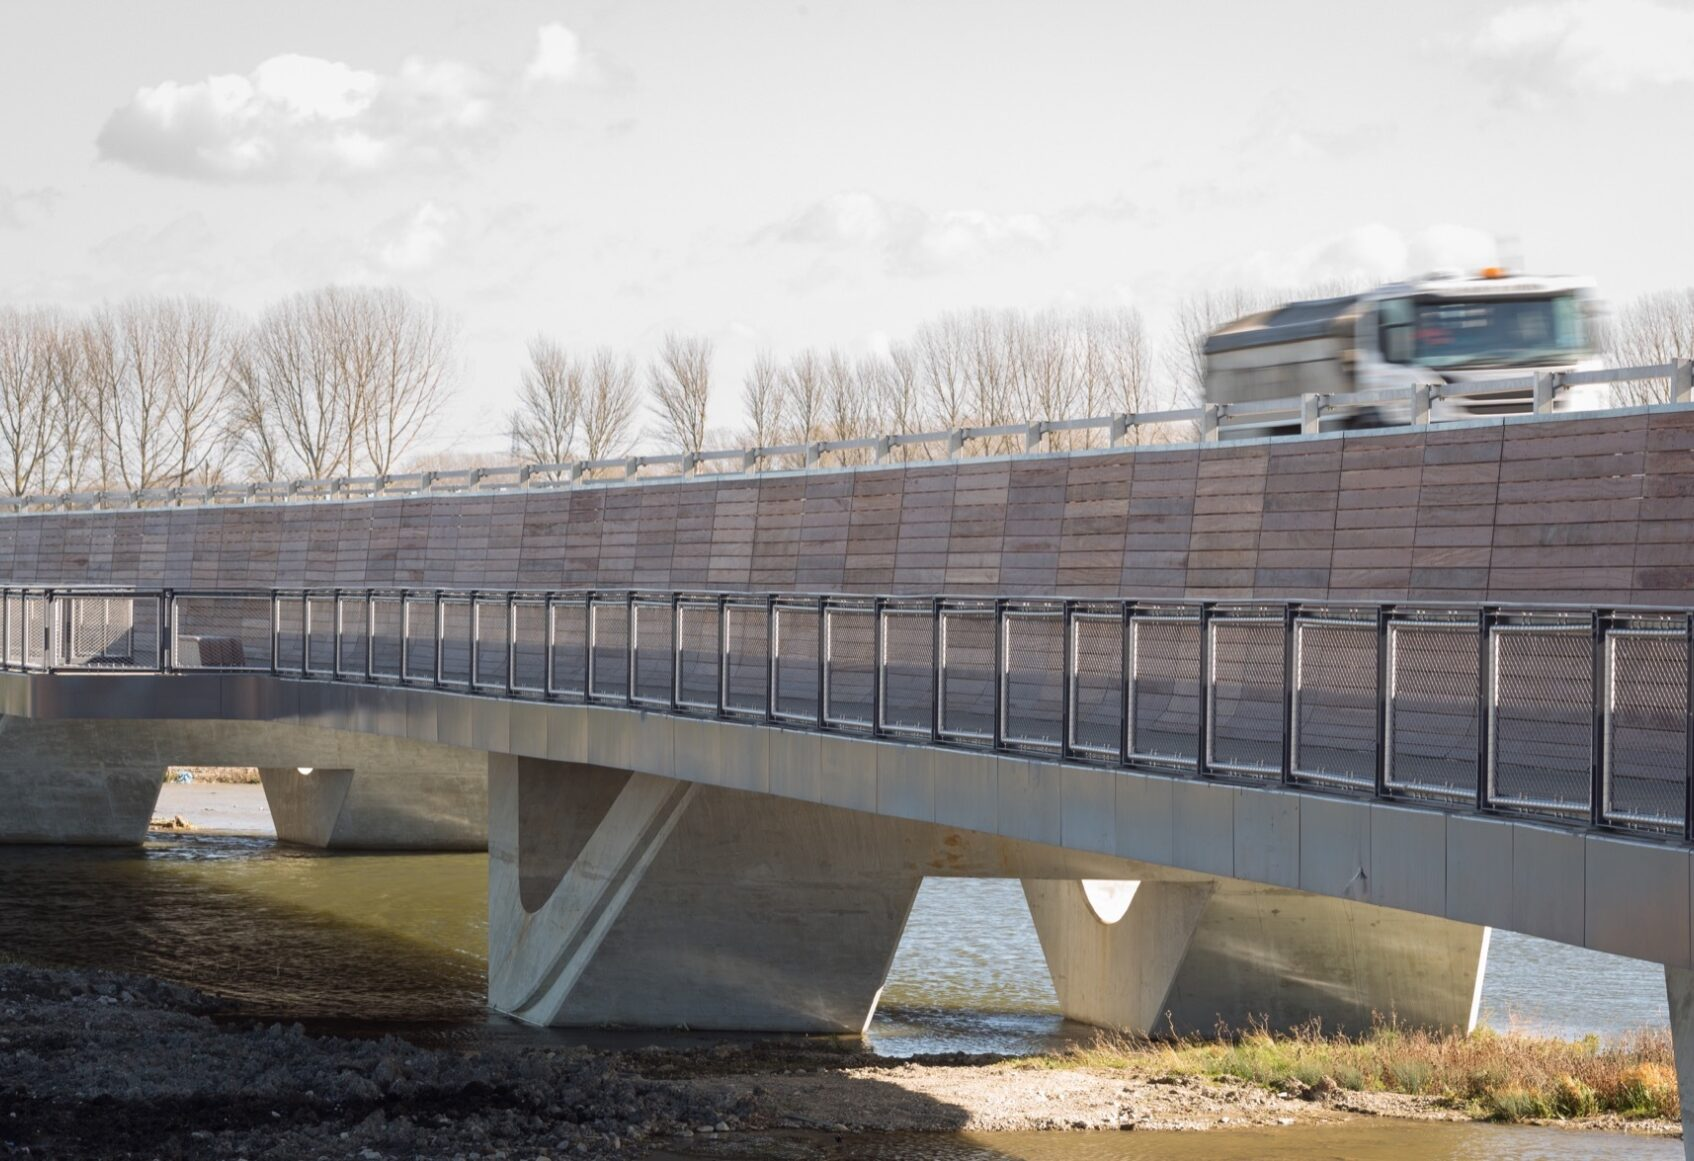 Lorry travelling at speed along road above walkway on Ely Bypass